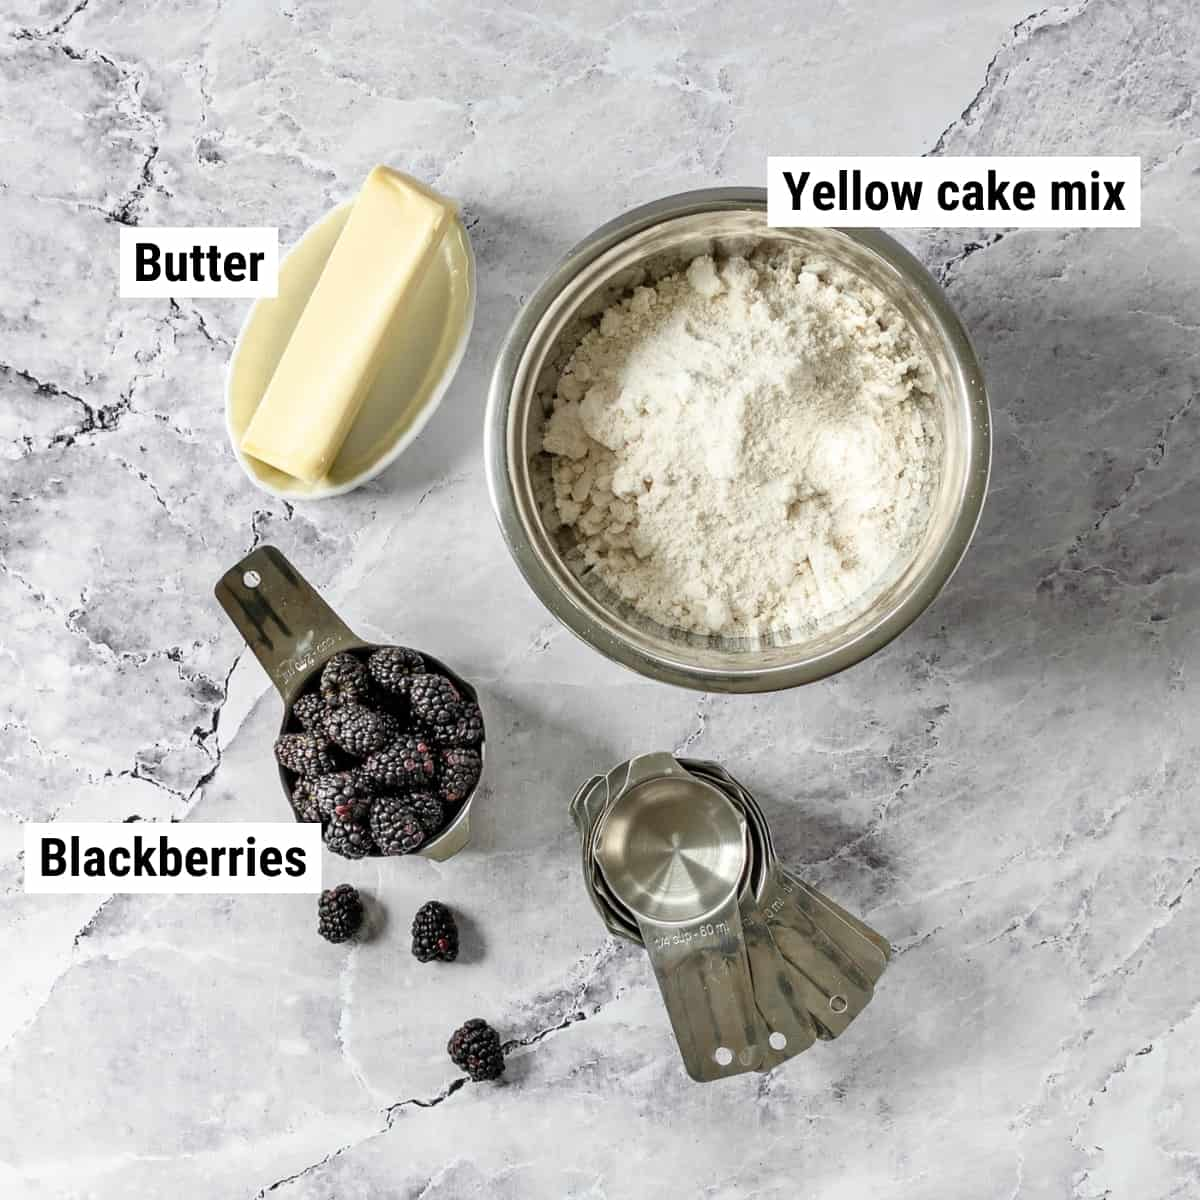 The ingredients to make blackberry cobbler with cake mix laid out on a table.